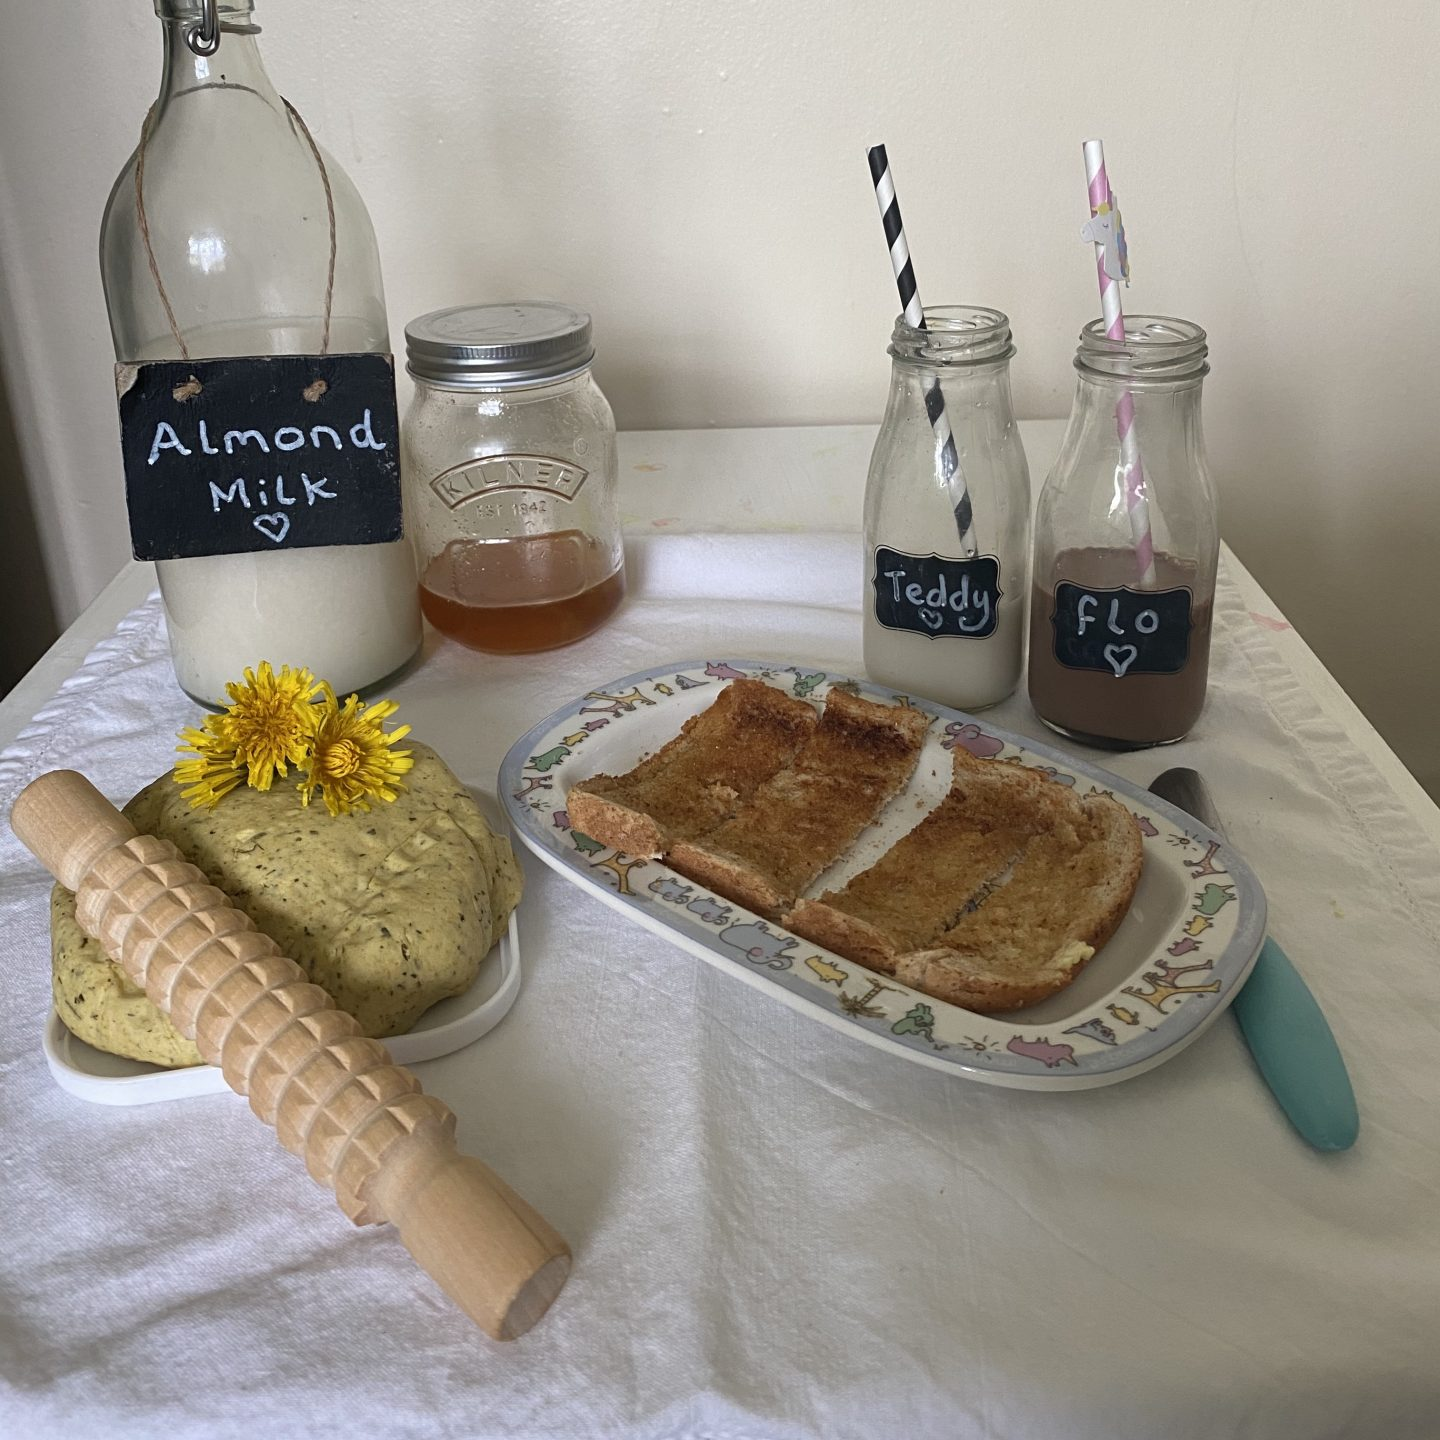 A table of self care with almond milk, toast, honey and playdough.